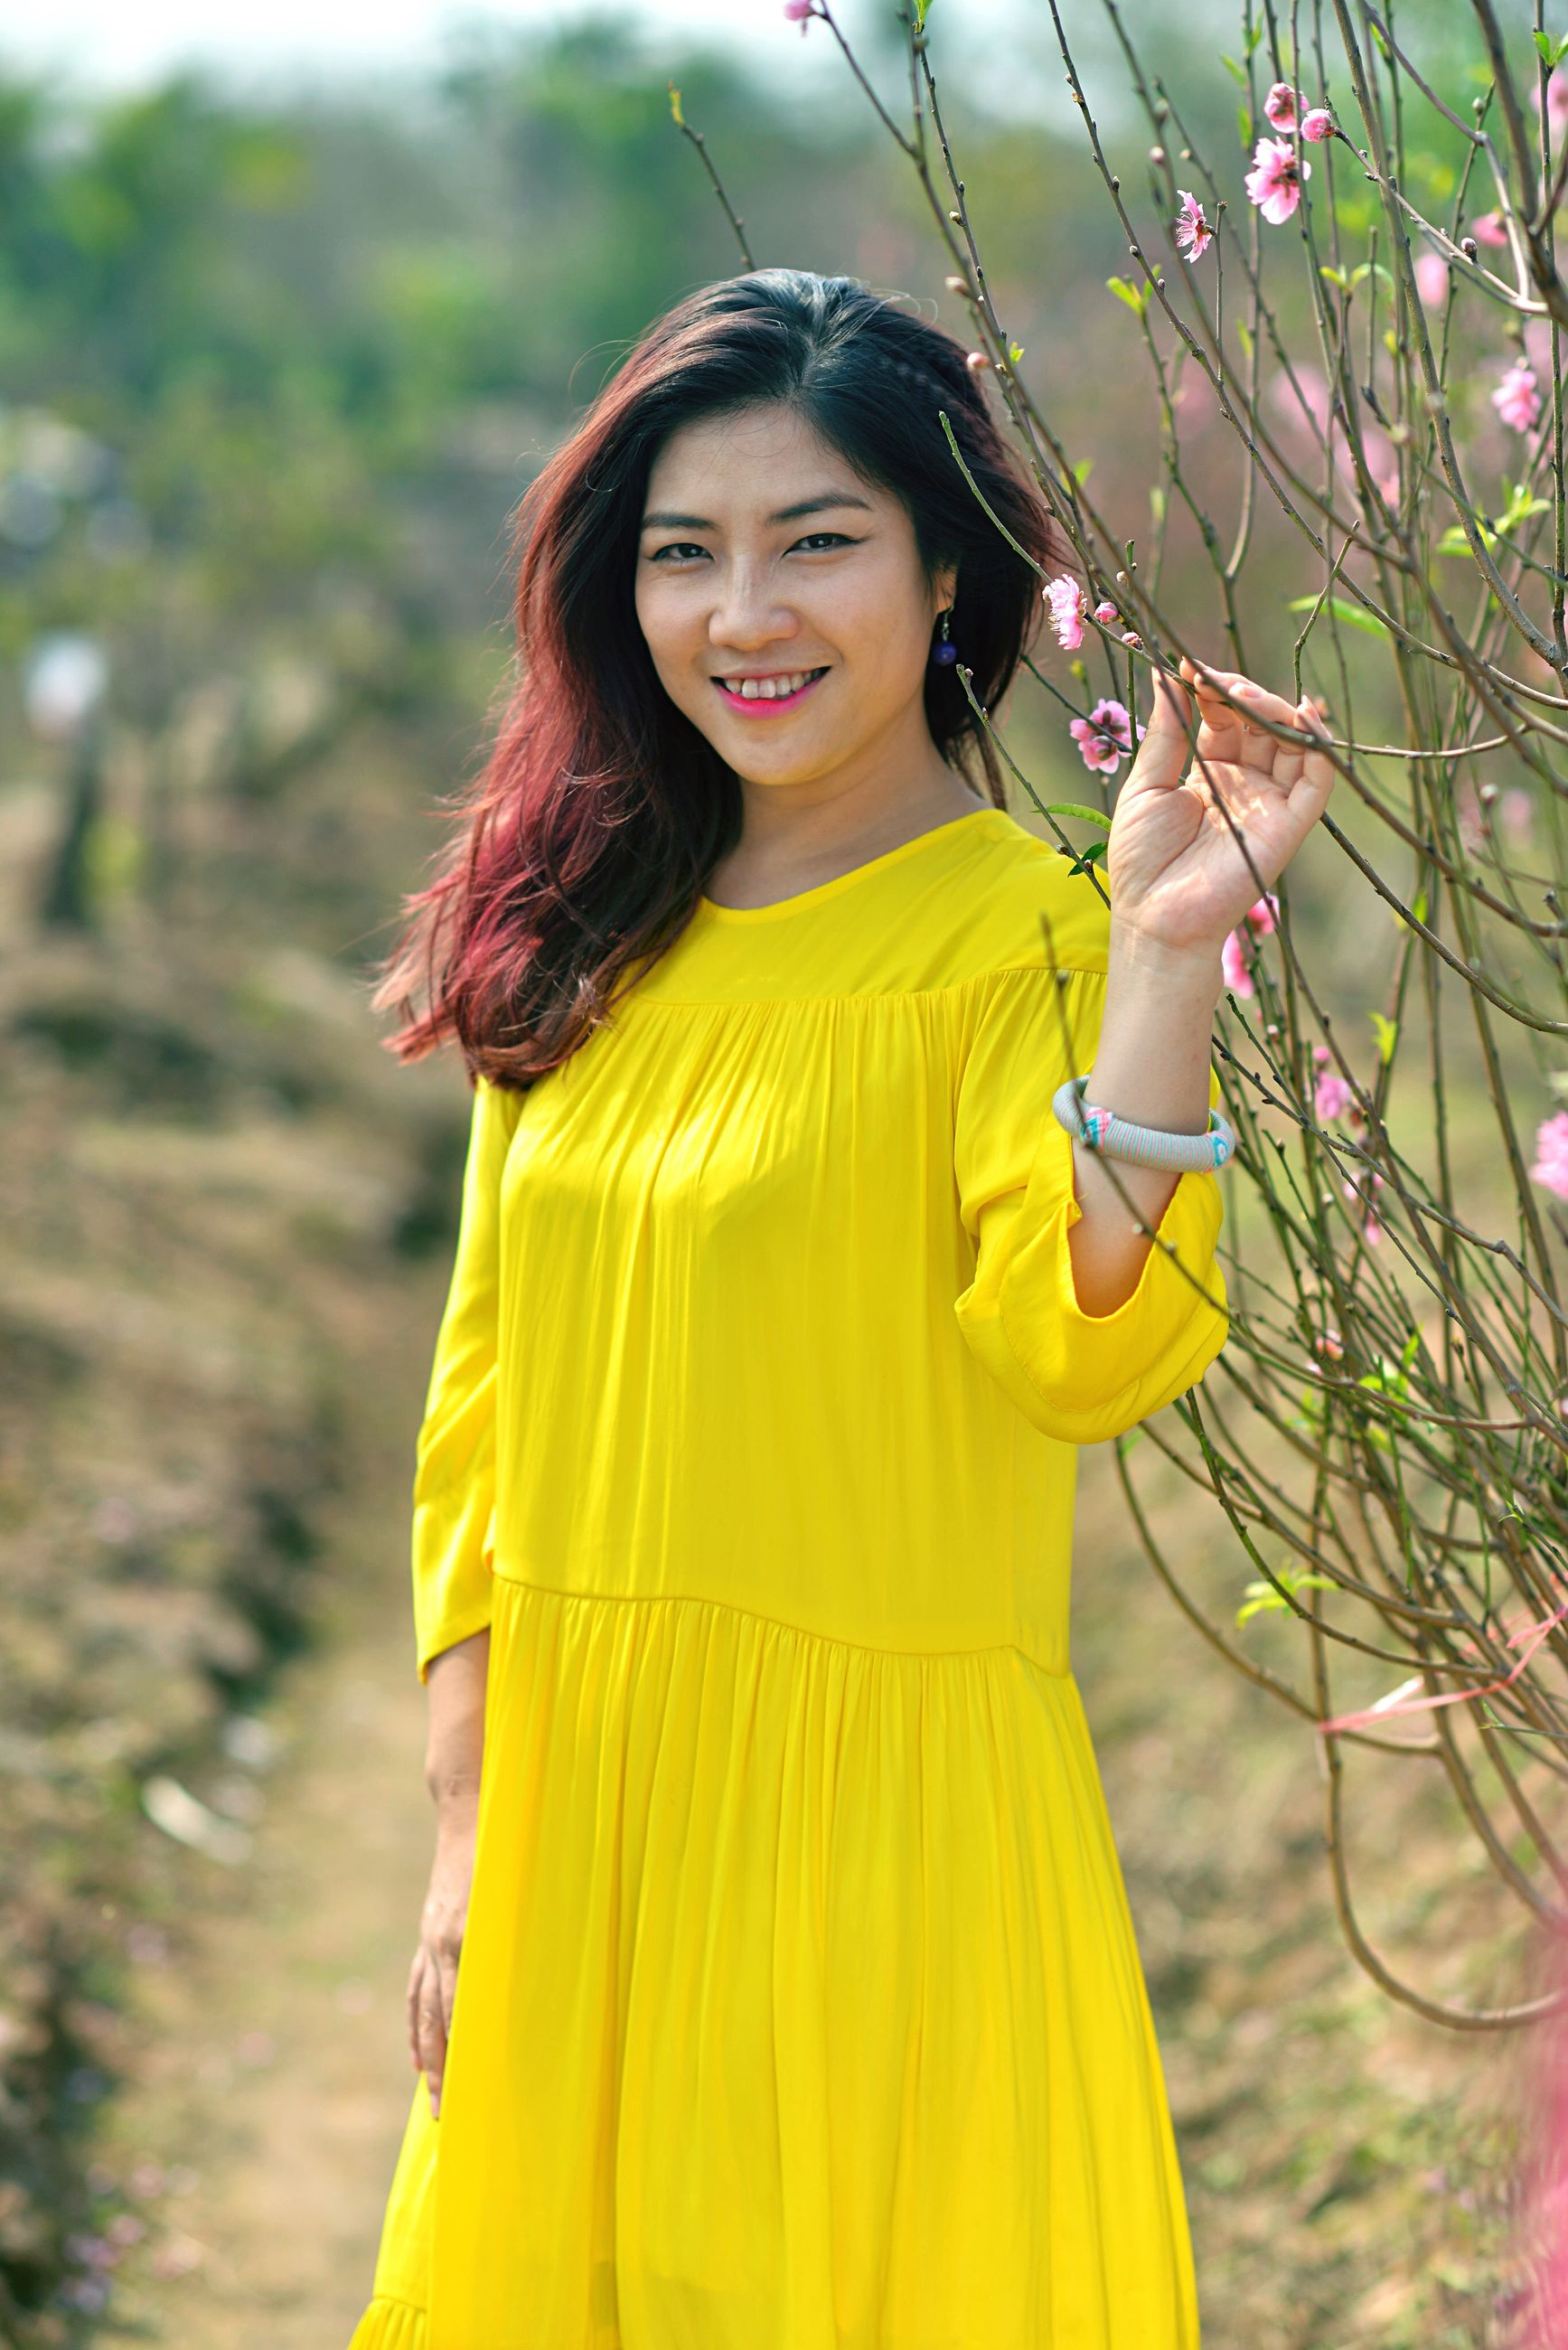 yellow, one person, smiling, portrait, beauty, looking at camera, casual clothing, outdoors, people, happiness, standing, tree, adults only, day, human arm, human body part, nature, close-up, adult, bangle